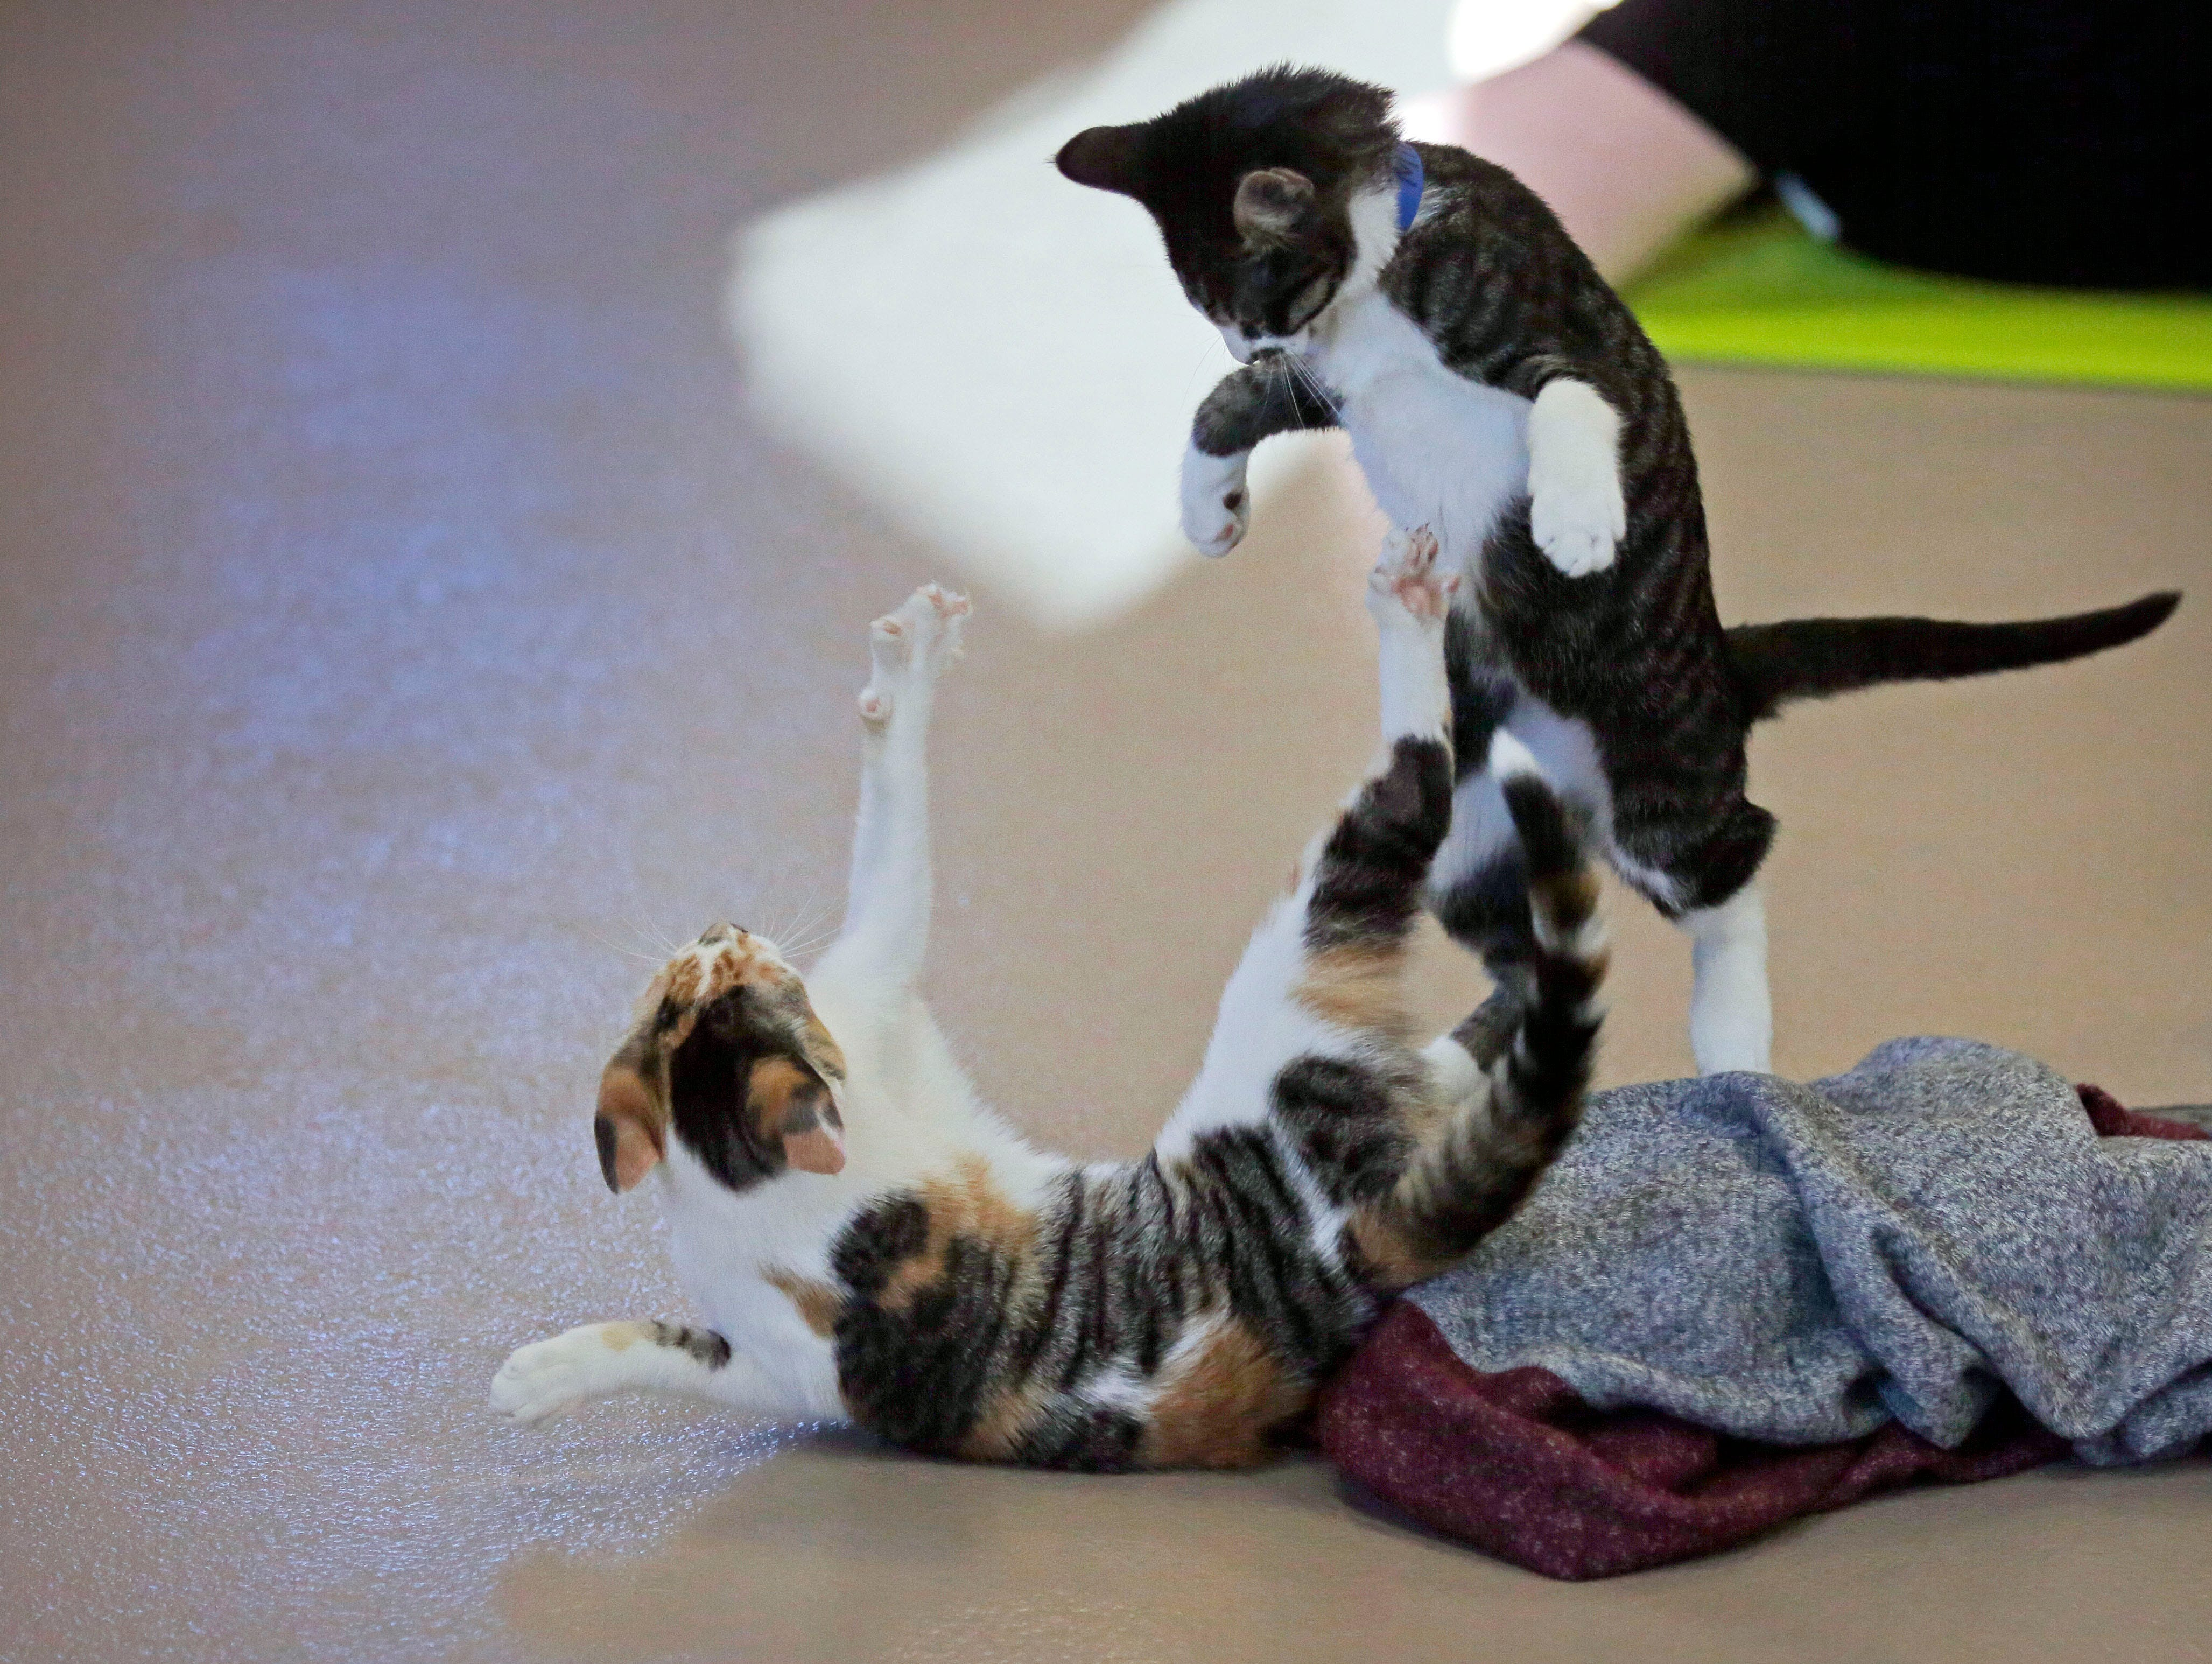 Kittens play during class as the Fox Valley Humane Association and Grace Under Fire Yoga bring together adoptable kittens and yoga class for Kitten Yoga Saturday, October 13, 2018, at the Fox Valley Humane Association in Appleton, Wis.Ron Page/USA TODAY NETWORK-Wisconsin